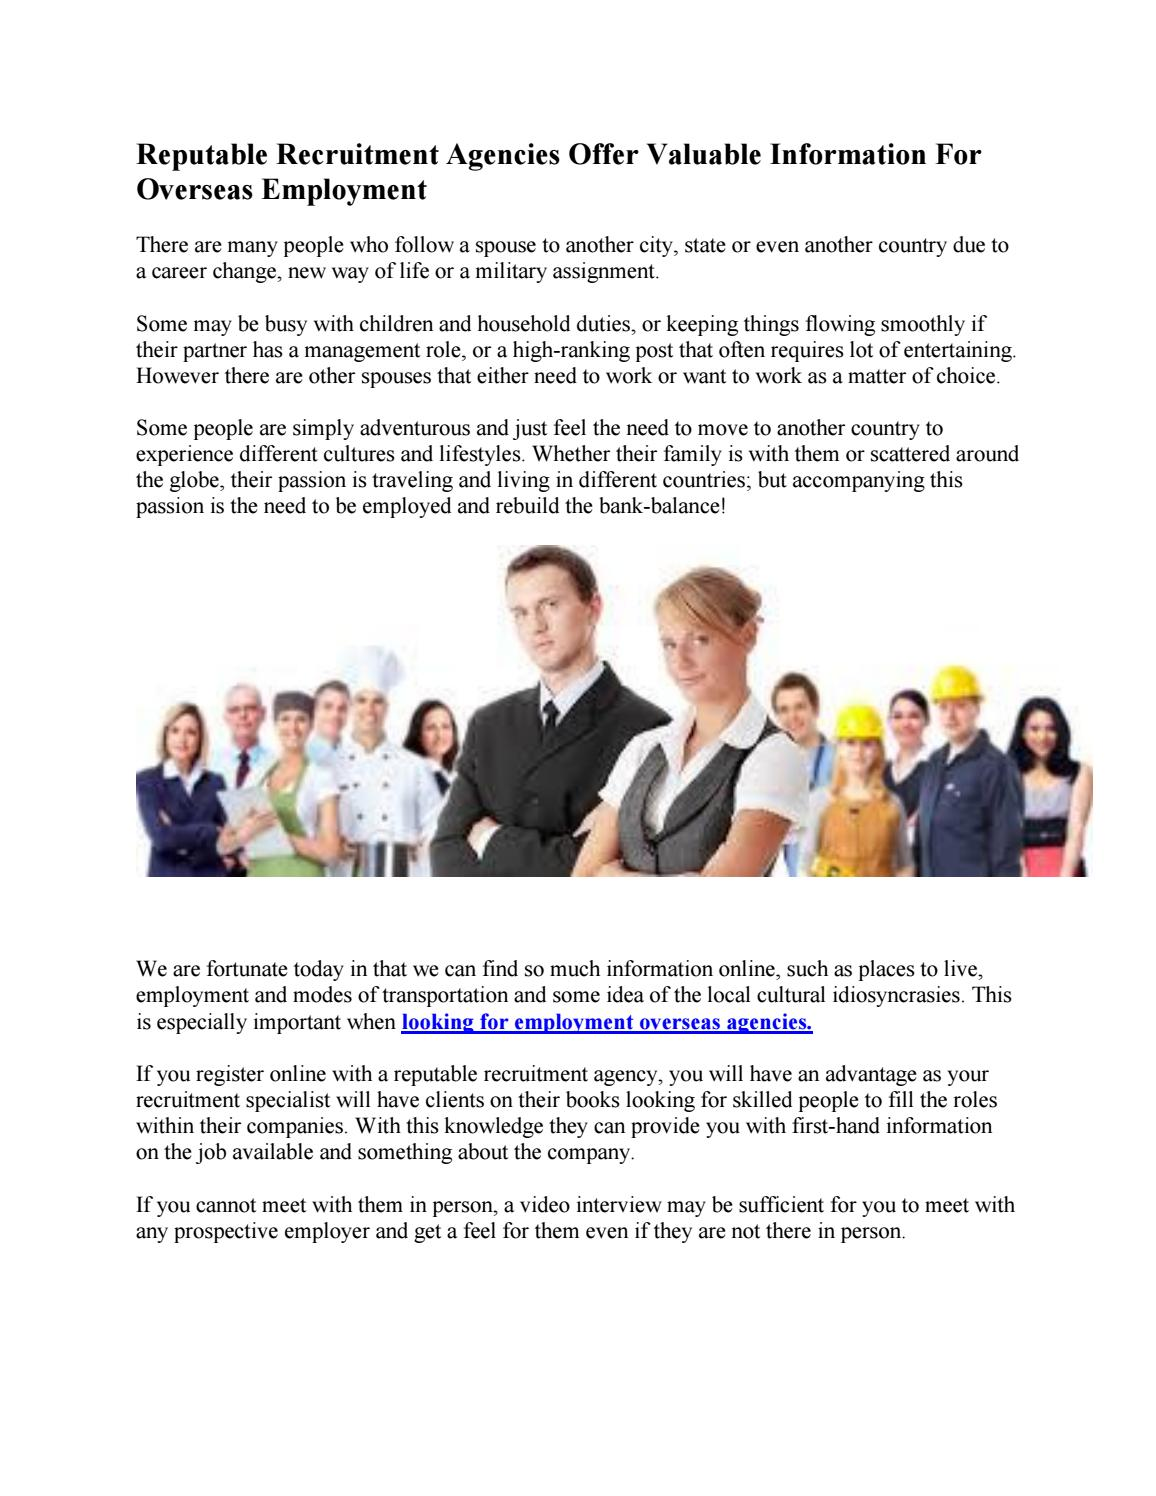 reputable recruitment agencies offer valuable information for overseas employment by manpower recruiting company from pakistan to saudi arabia - International Job Interviewing What Are The Cultural Differences